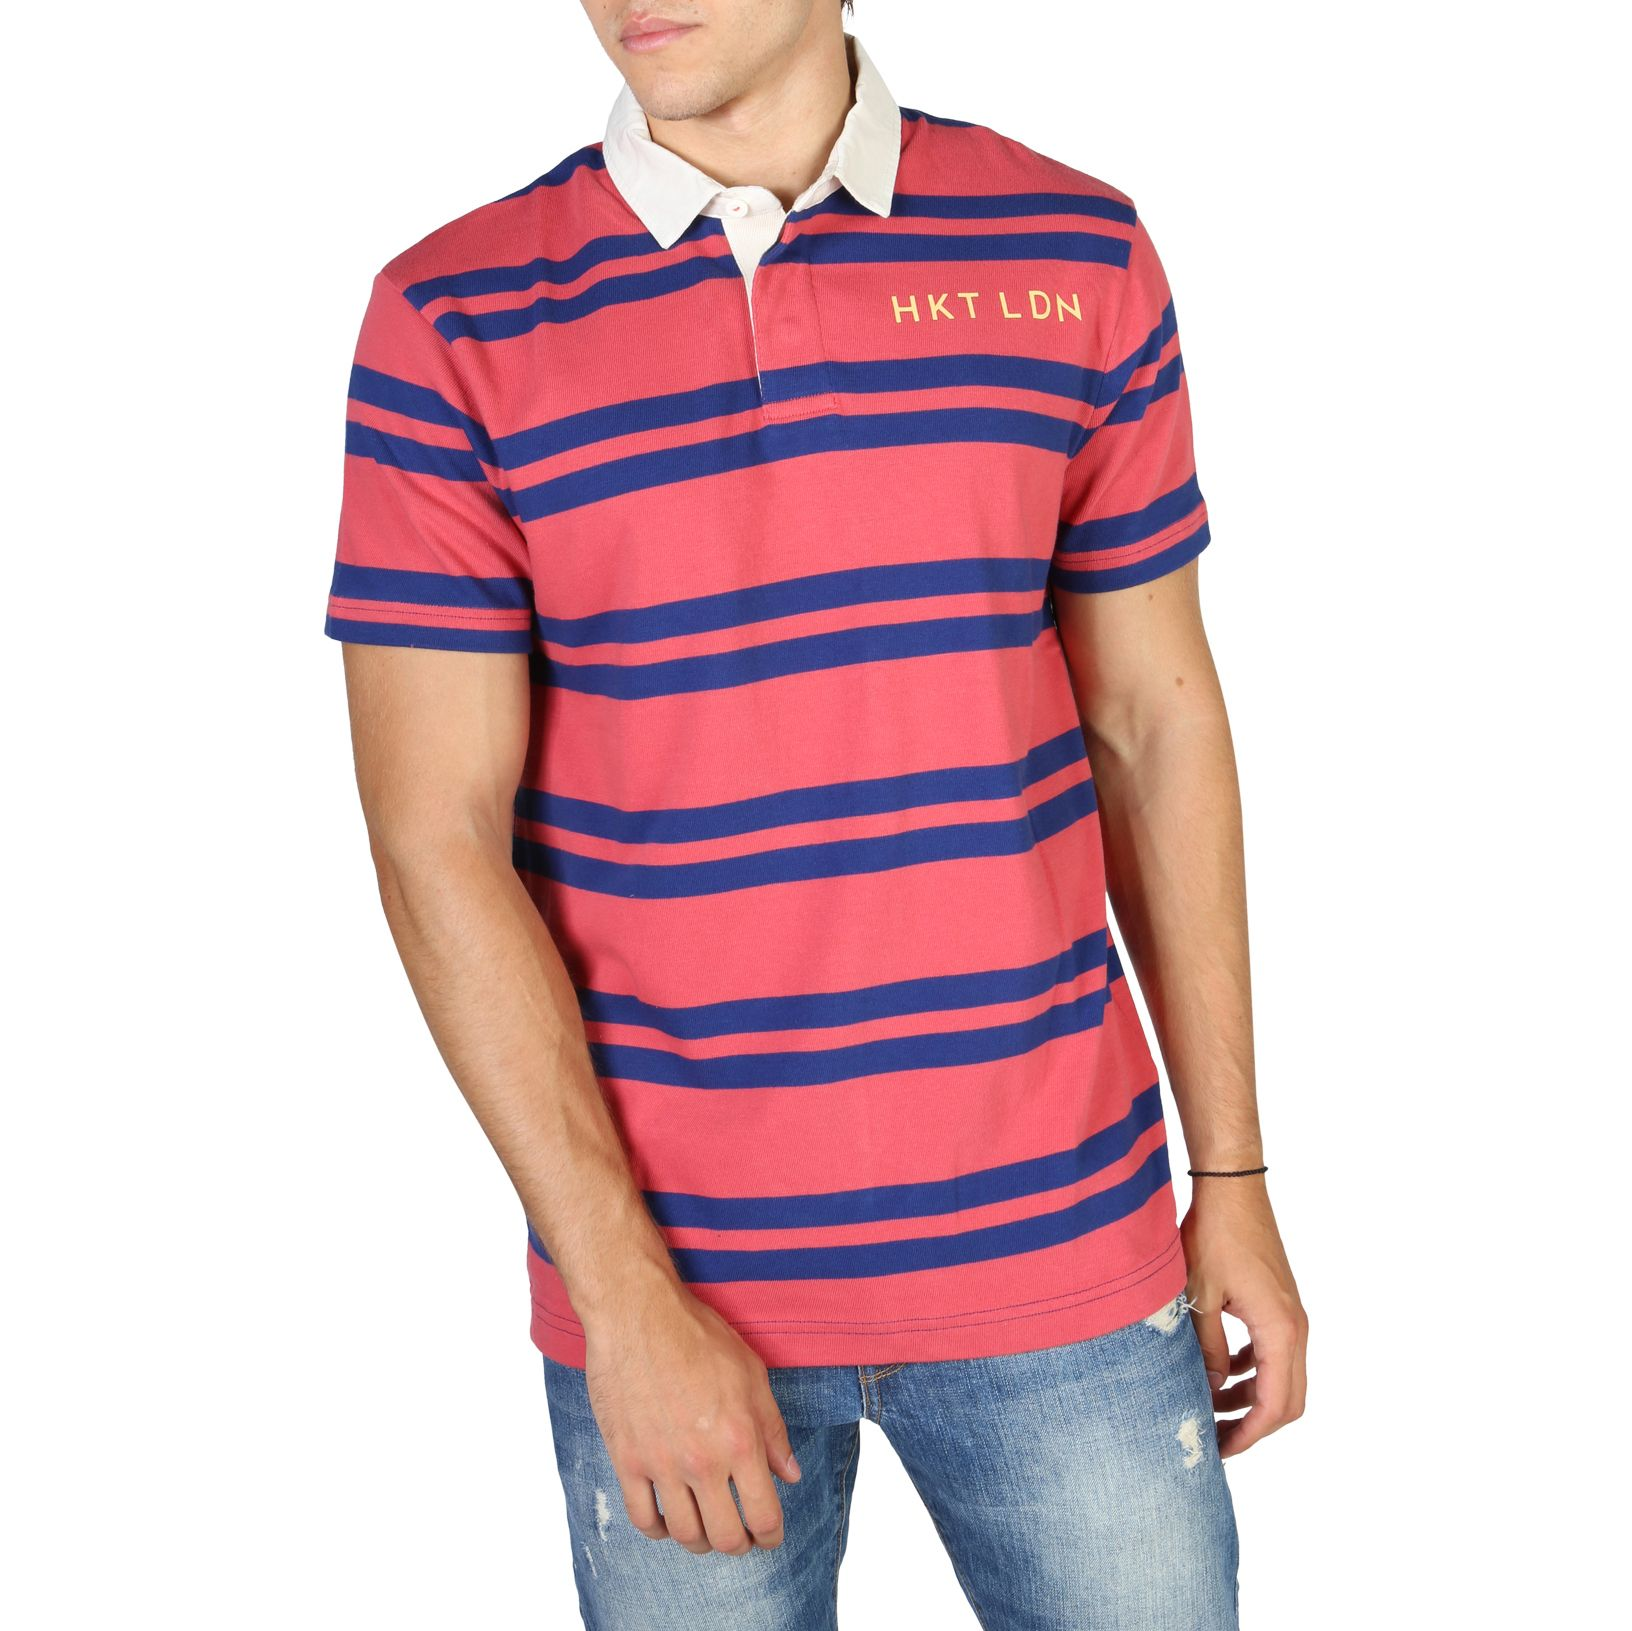 Hackett - HM570732 | You Fashion Outlet